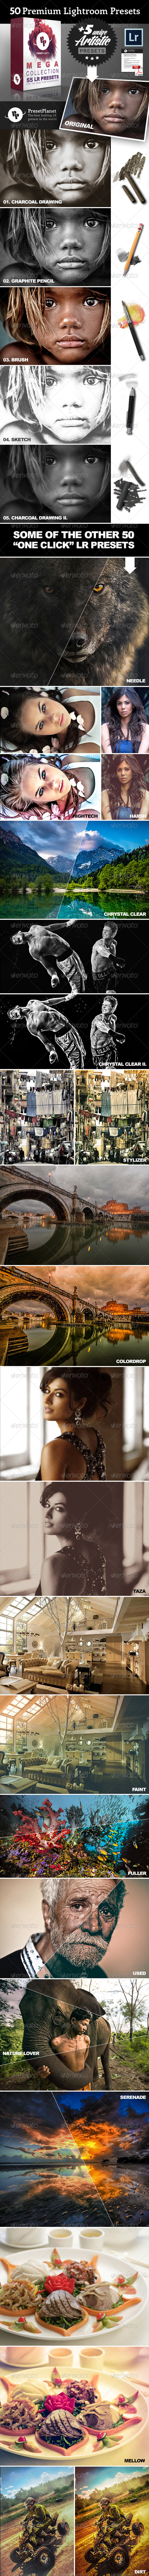 GraphicRiver 55 Premium Lightroom Presets 4968332